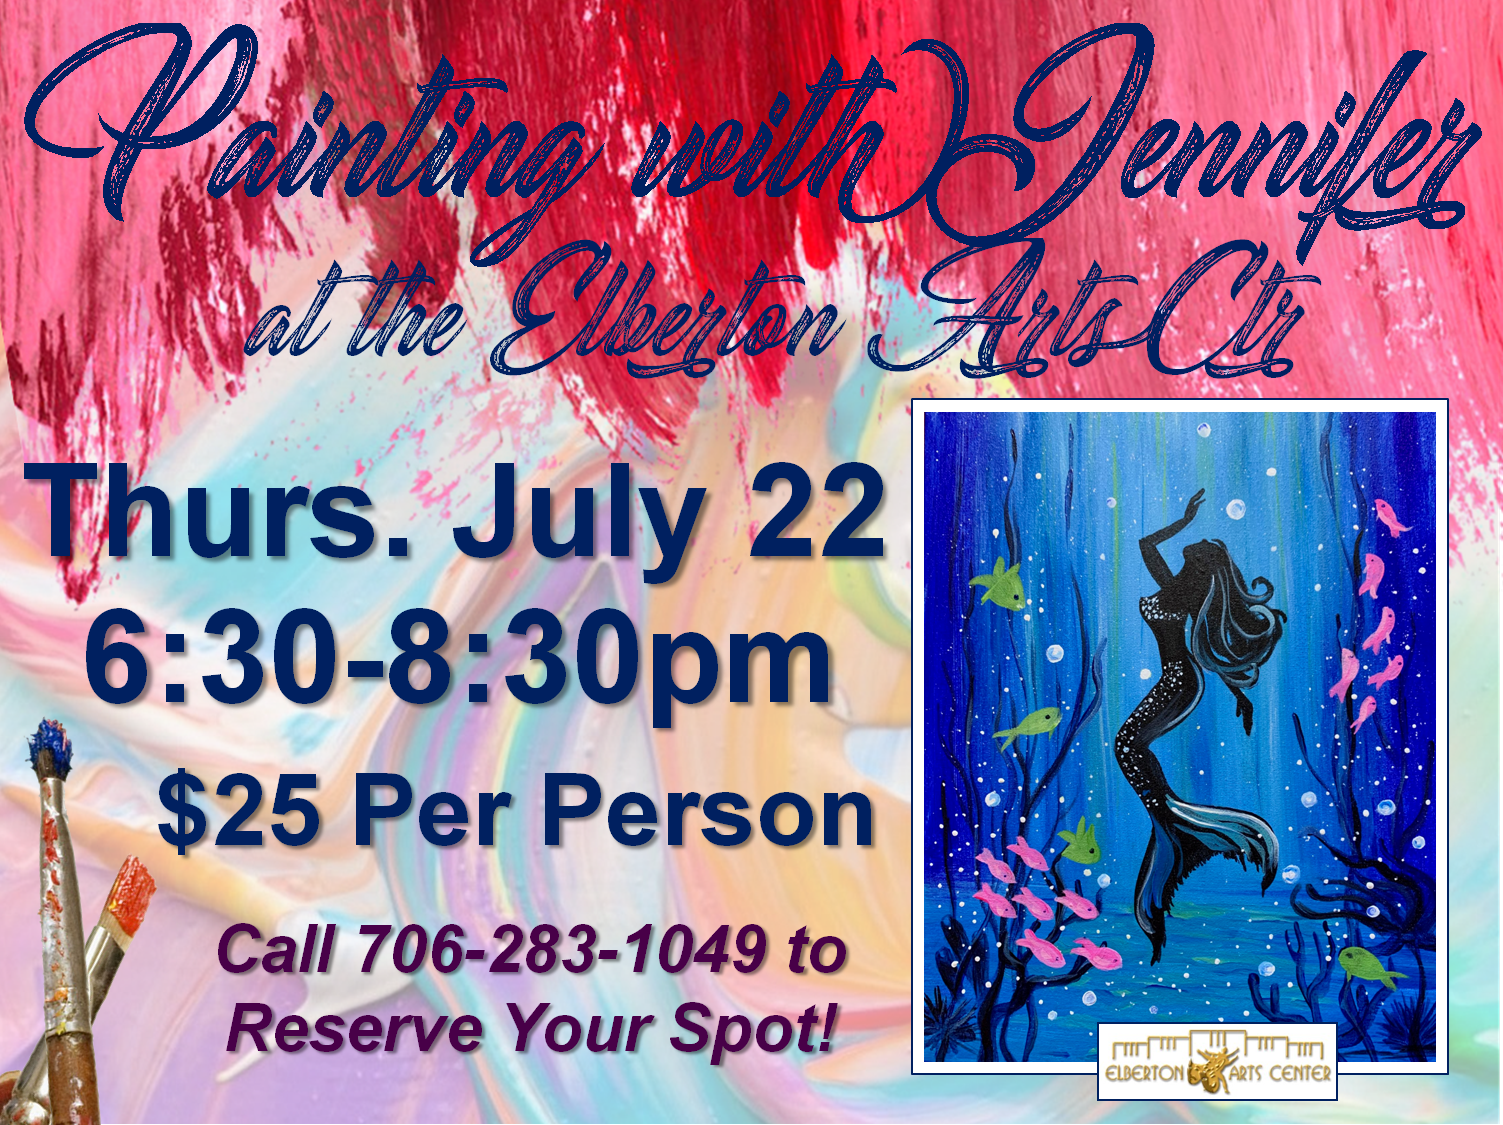 Painting with Jennifer Thurs July 22